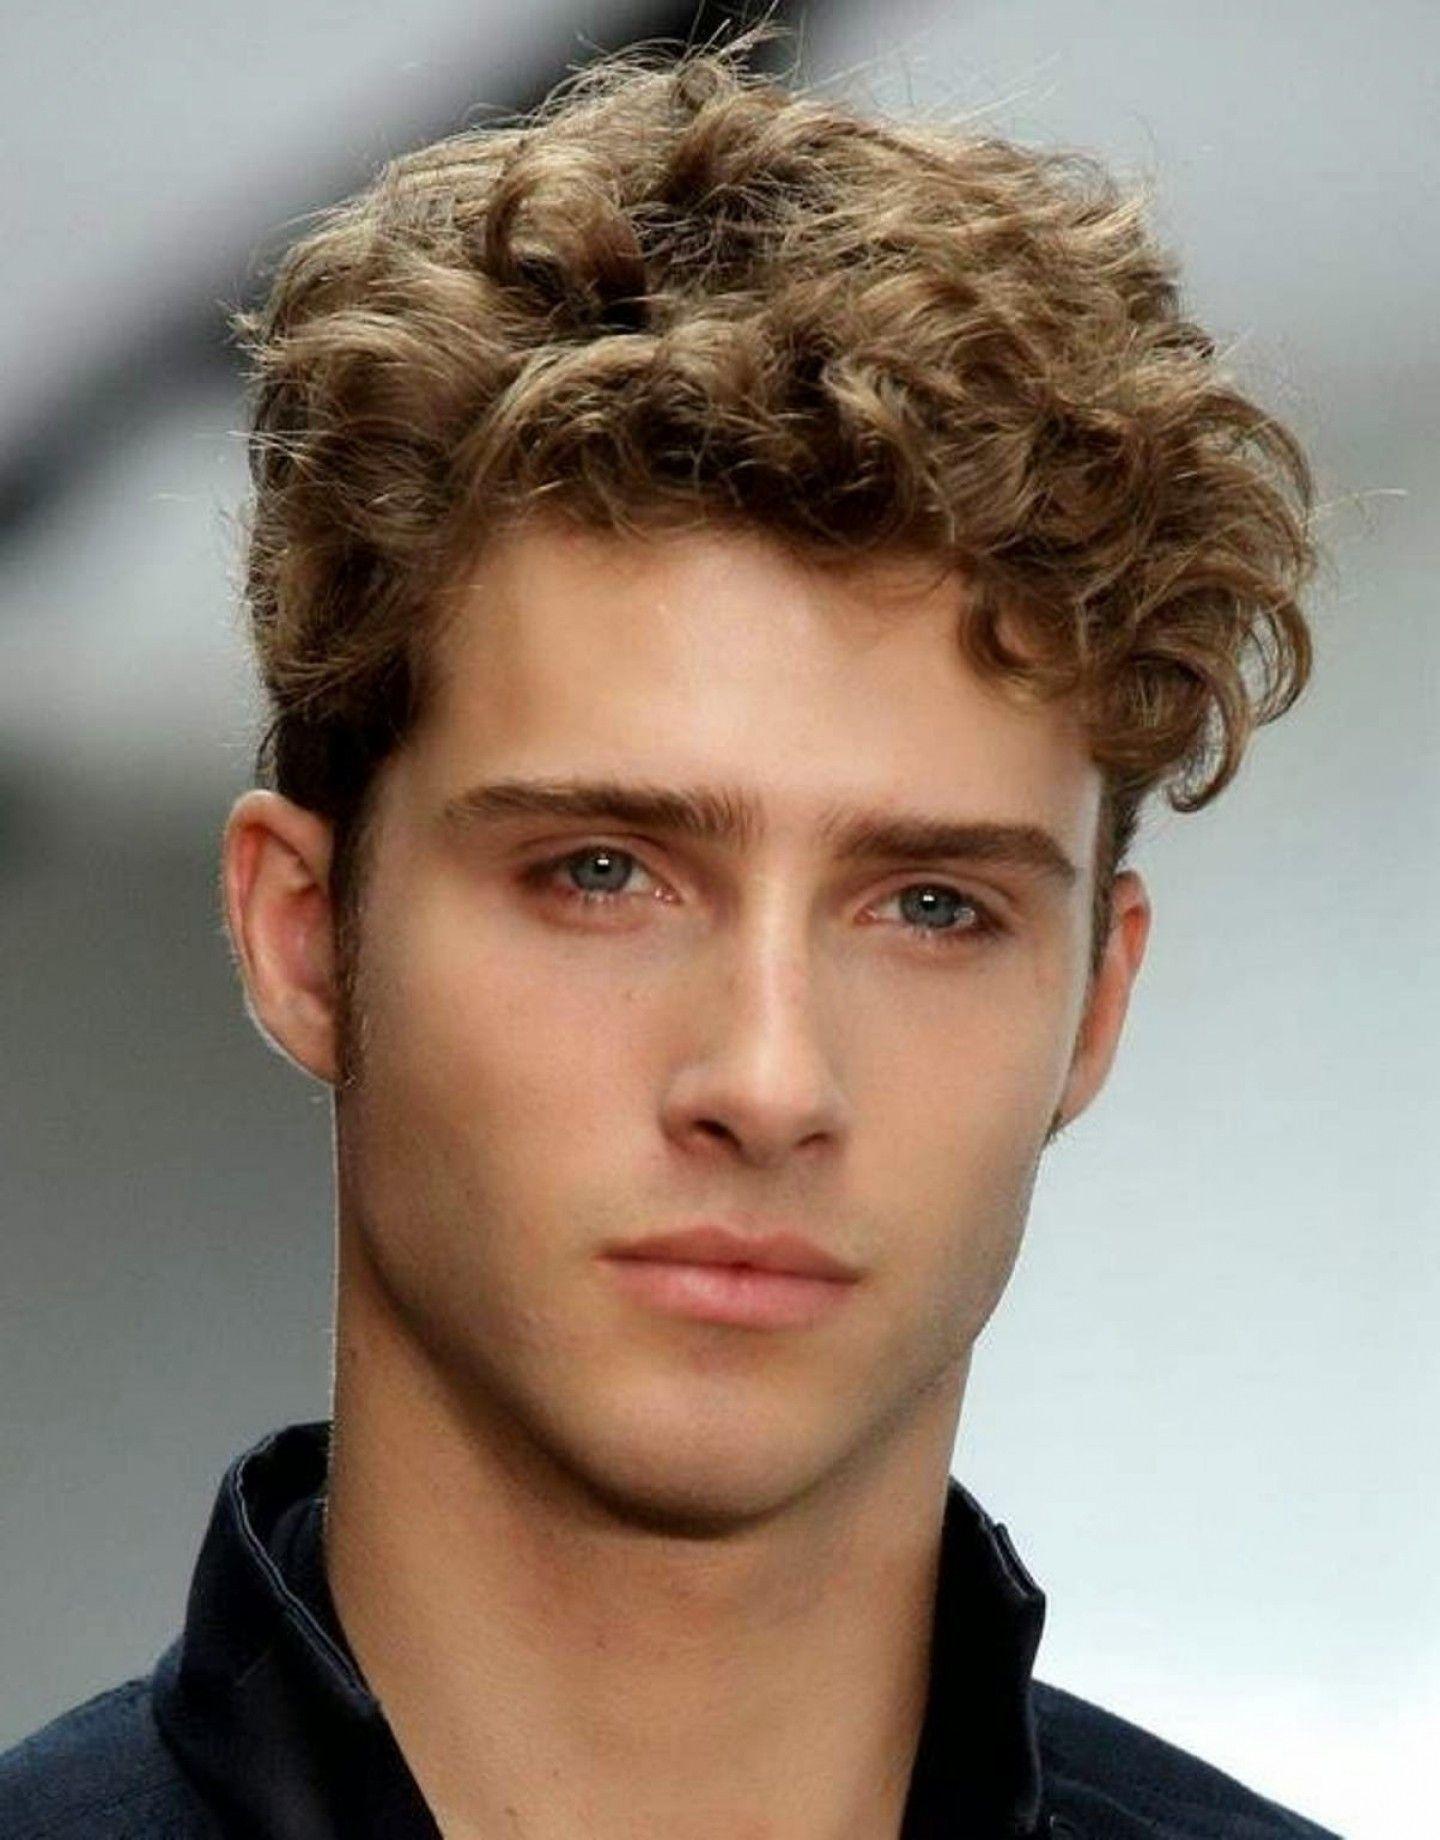 Cute Male Celebrities With Curly Hair Men S Curly Hairstyles